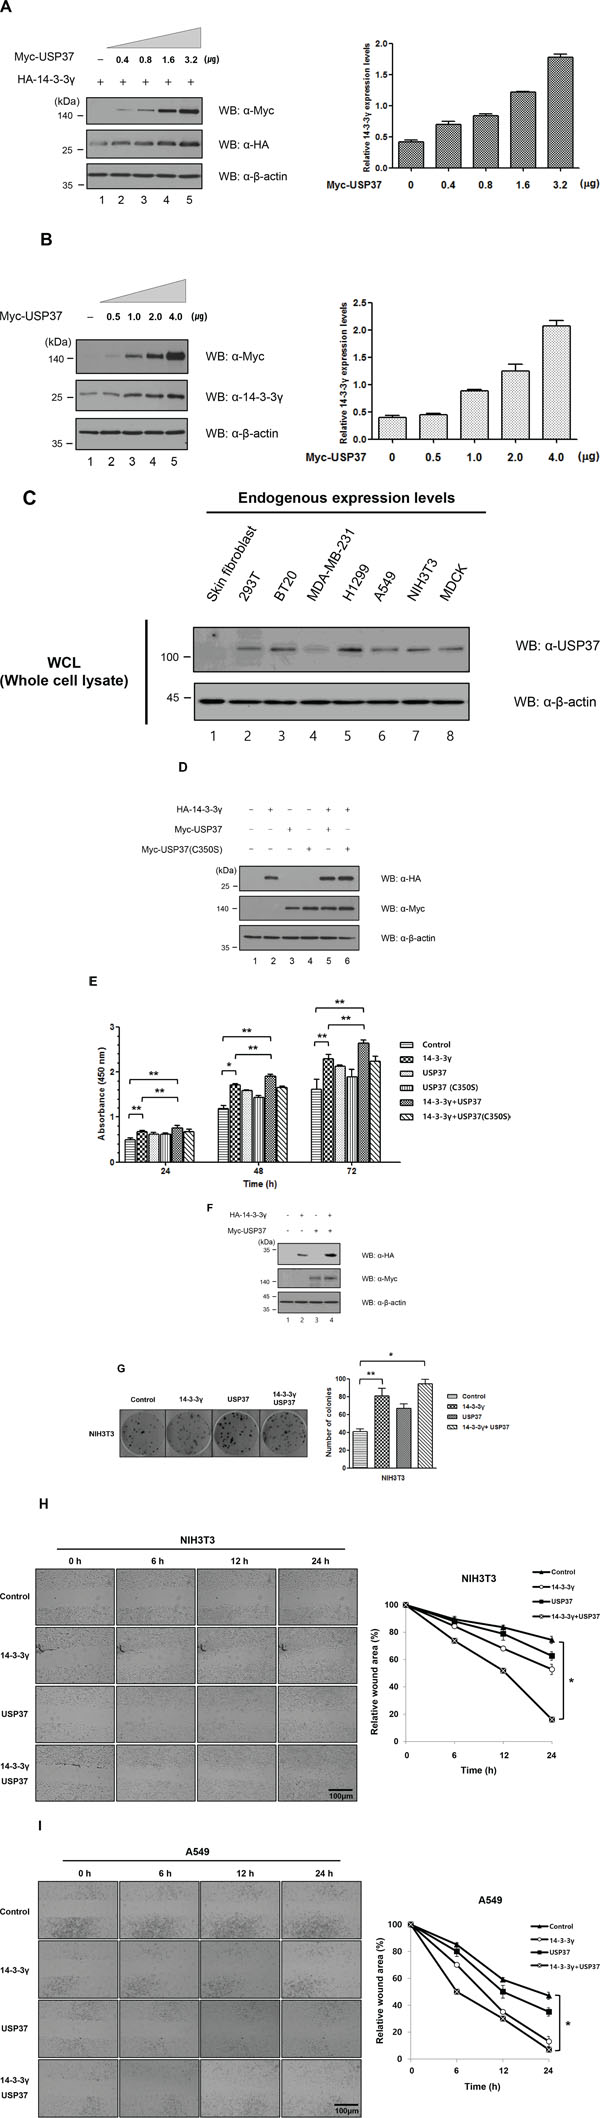 USP37 promoted cell viability and proliferation by stabilizing 14-3-3γ.